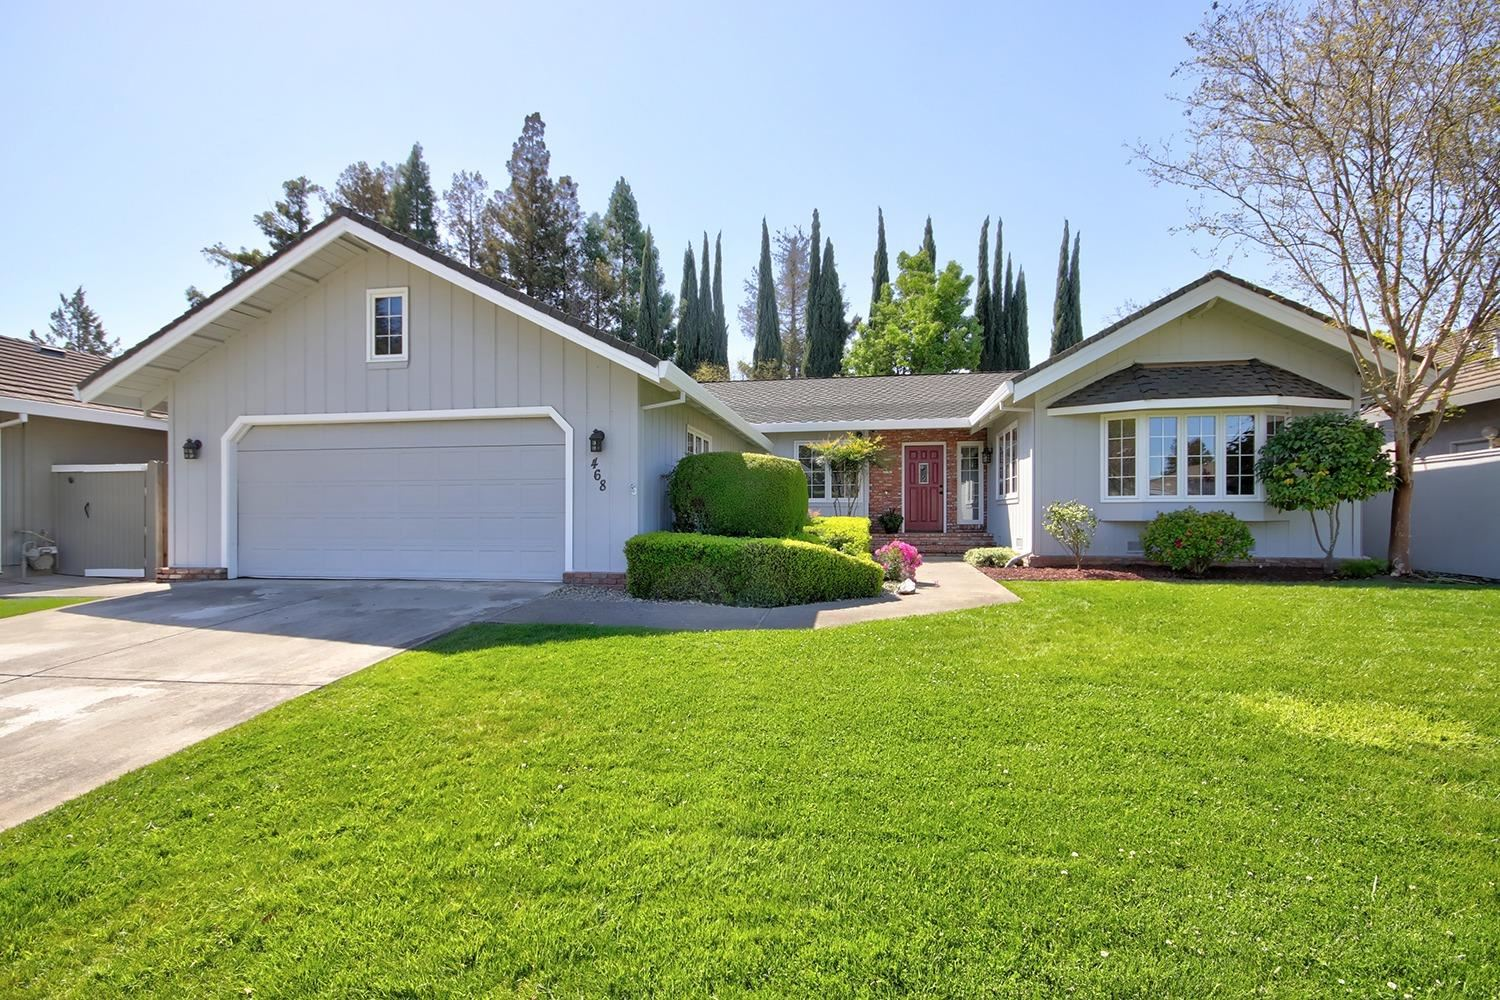 Photo of 468 Pimentel Way, Sacramento, CA 95831 (MLS # 221037268)